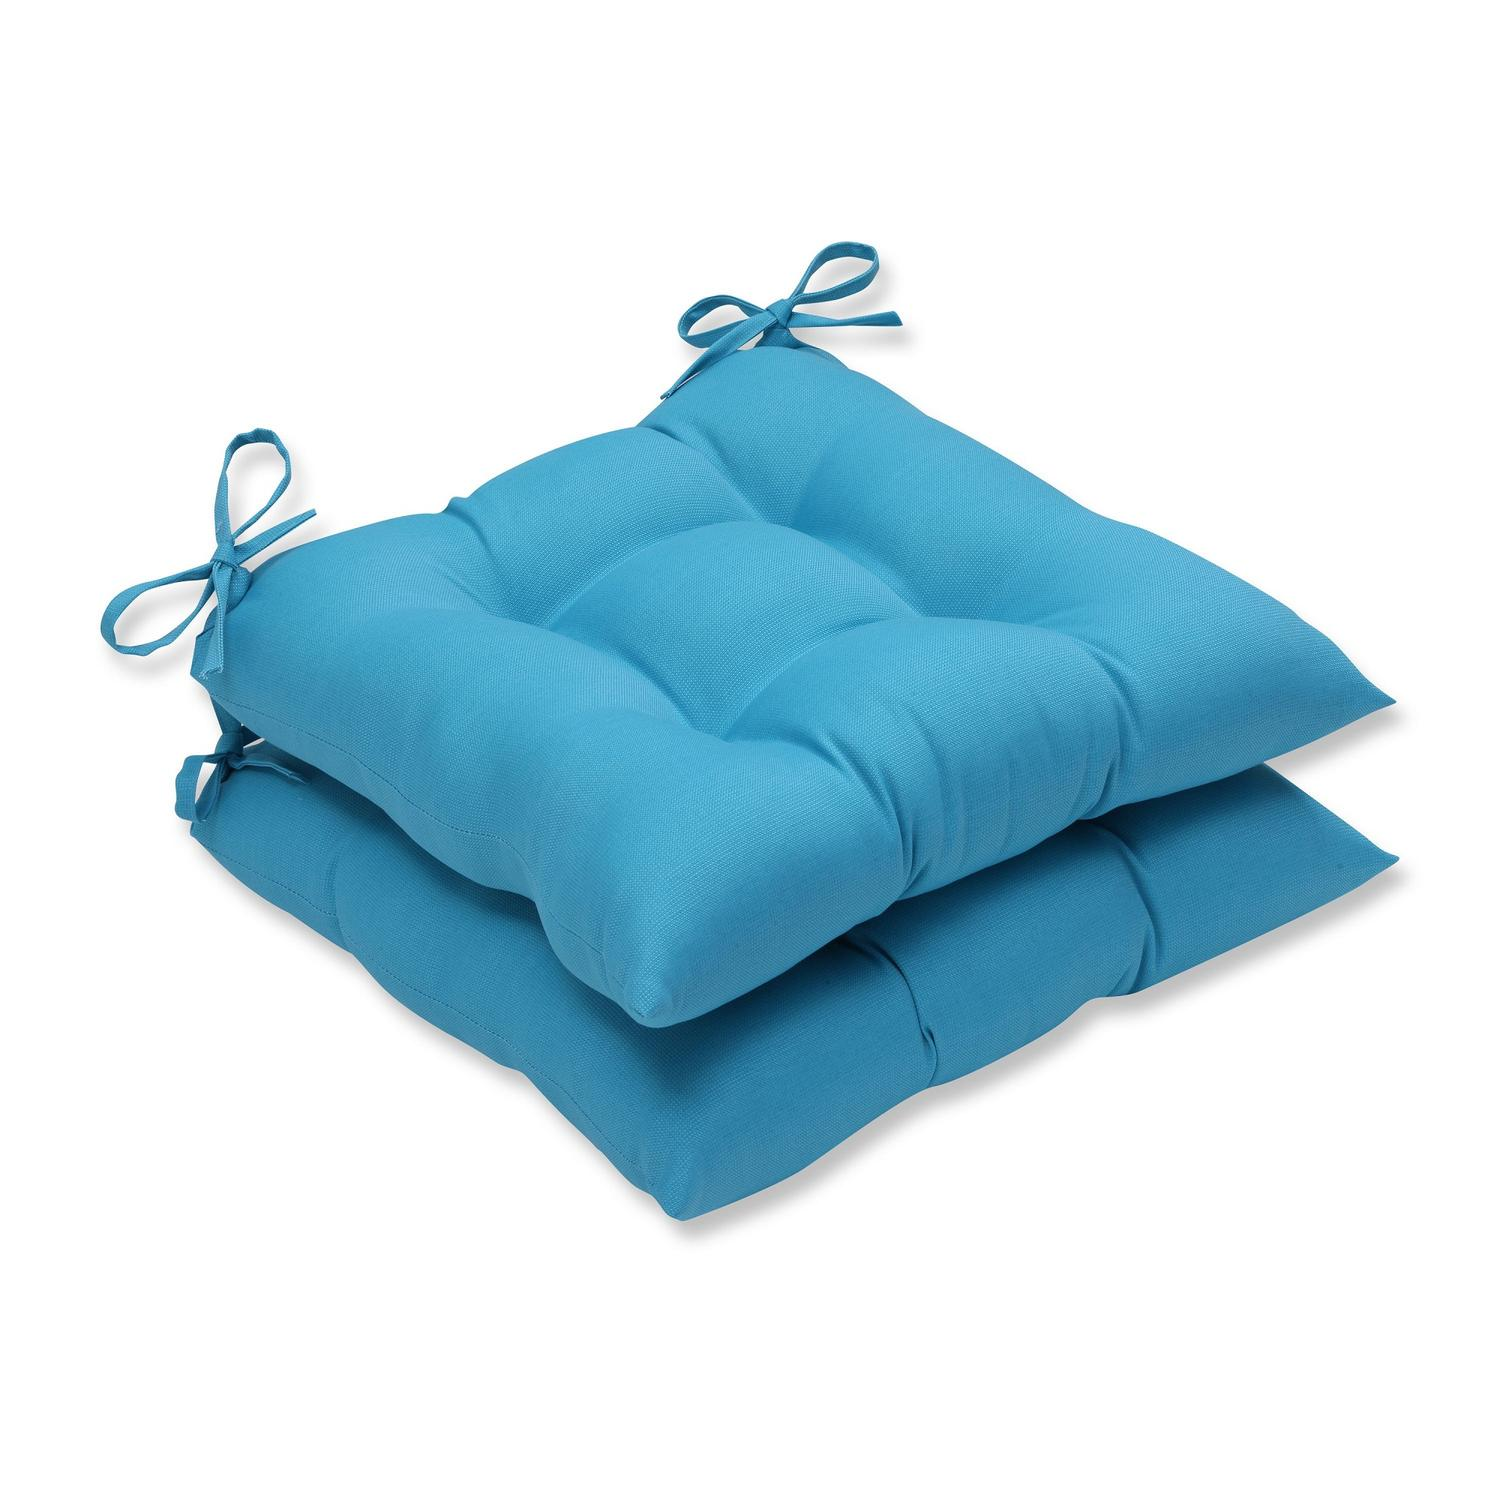 Set of 2 Blue UV/Fade Resistant Outdoor Patio Chaise Lounge Cushion with Ties 19""